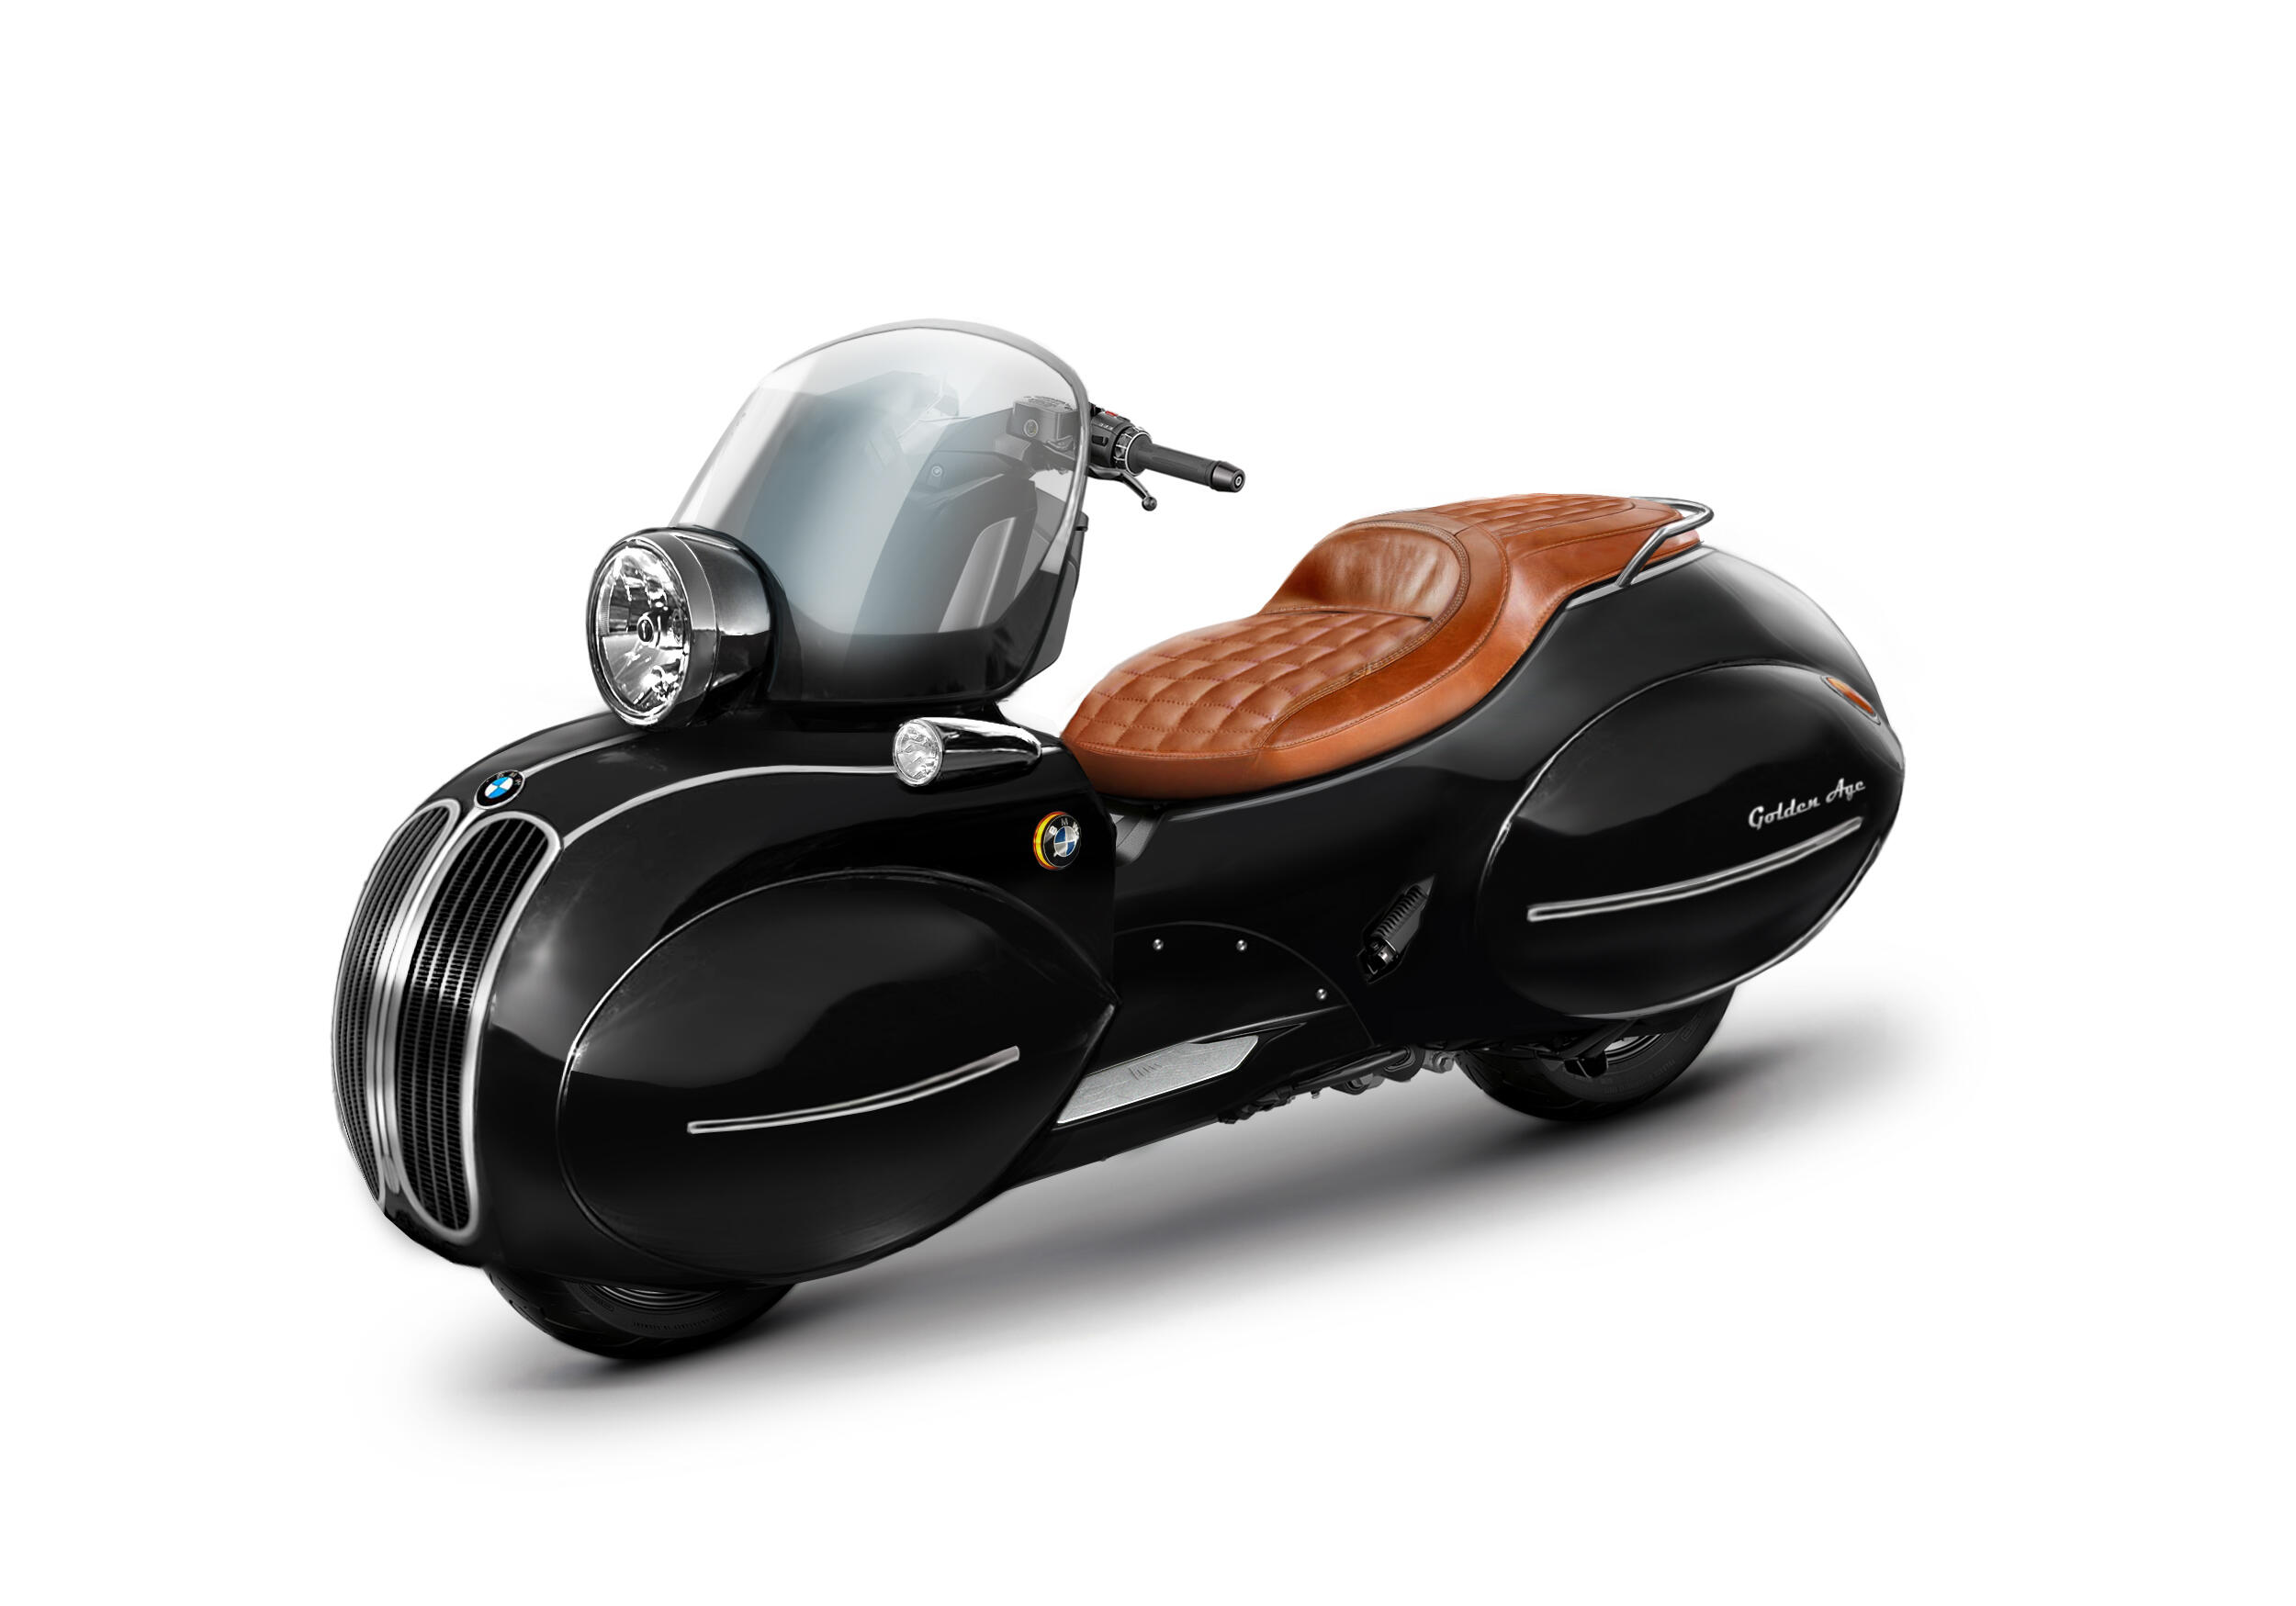 <p>It's one part practical transportation and one part art deco throwback.</p>